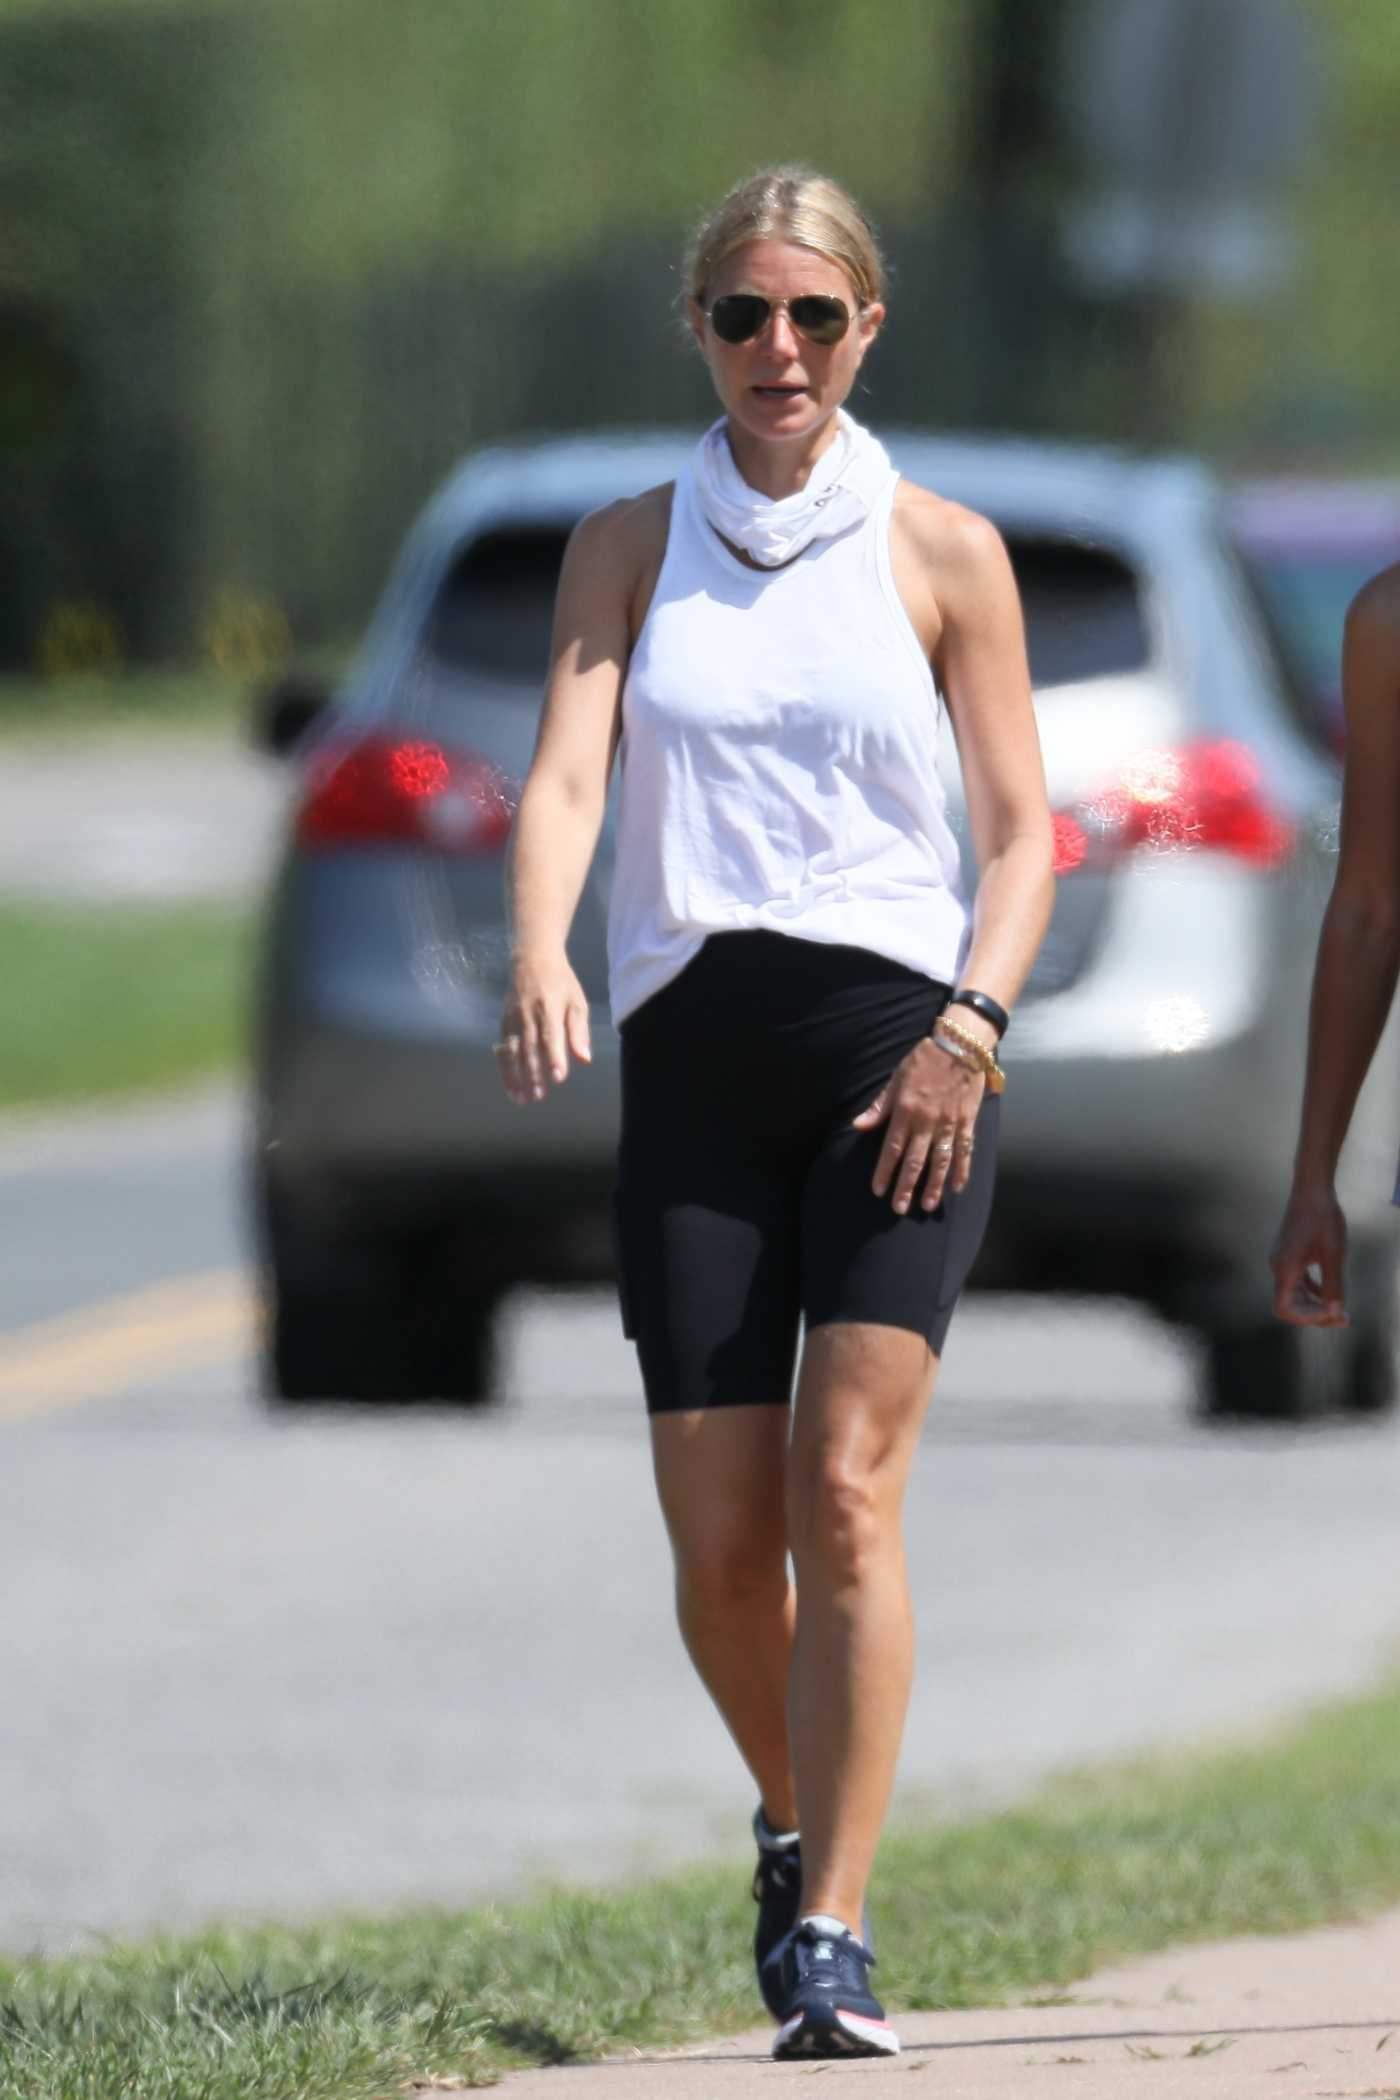 Gwyneth Paltrow in a White Tank Top Was Seen Out in the Hamptons, NYC 09/07/2020